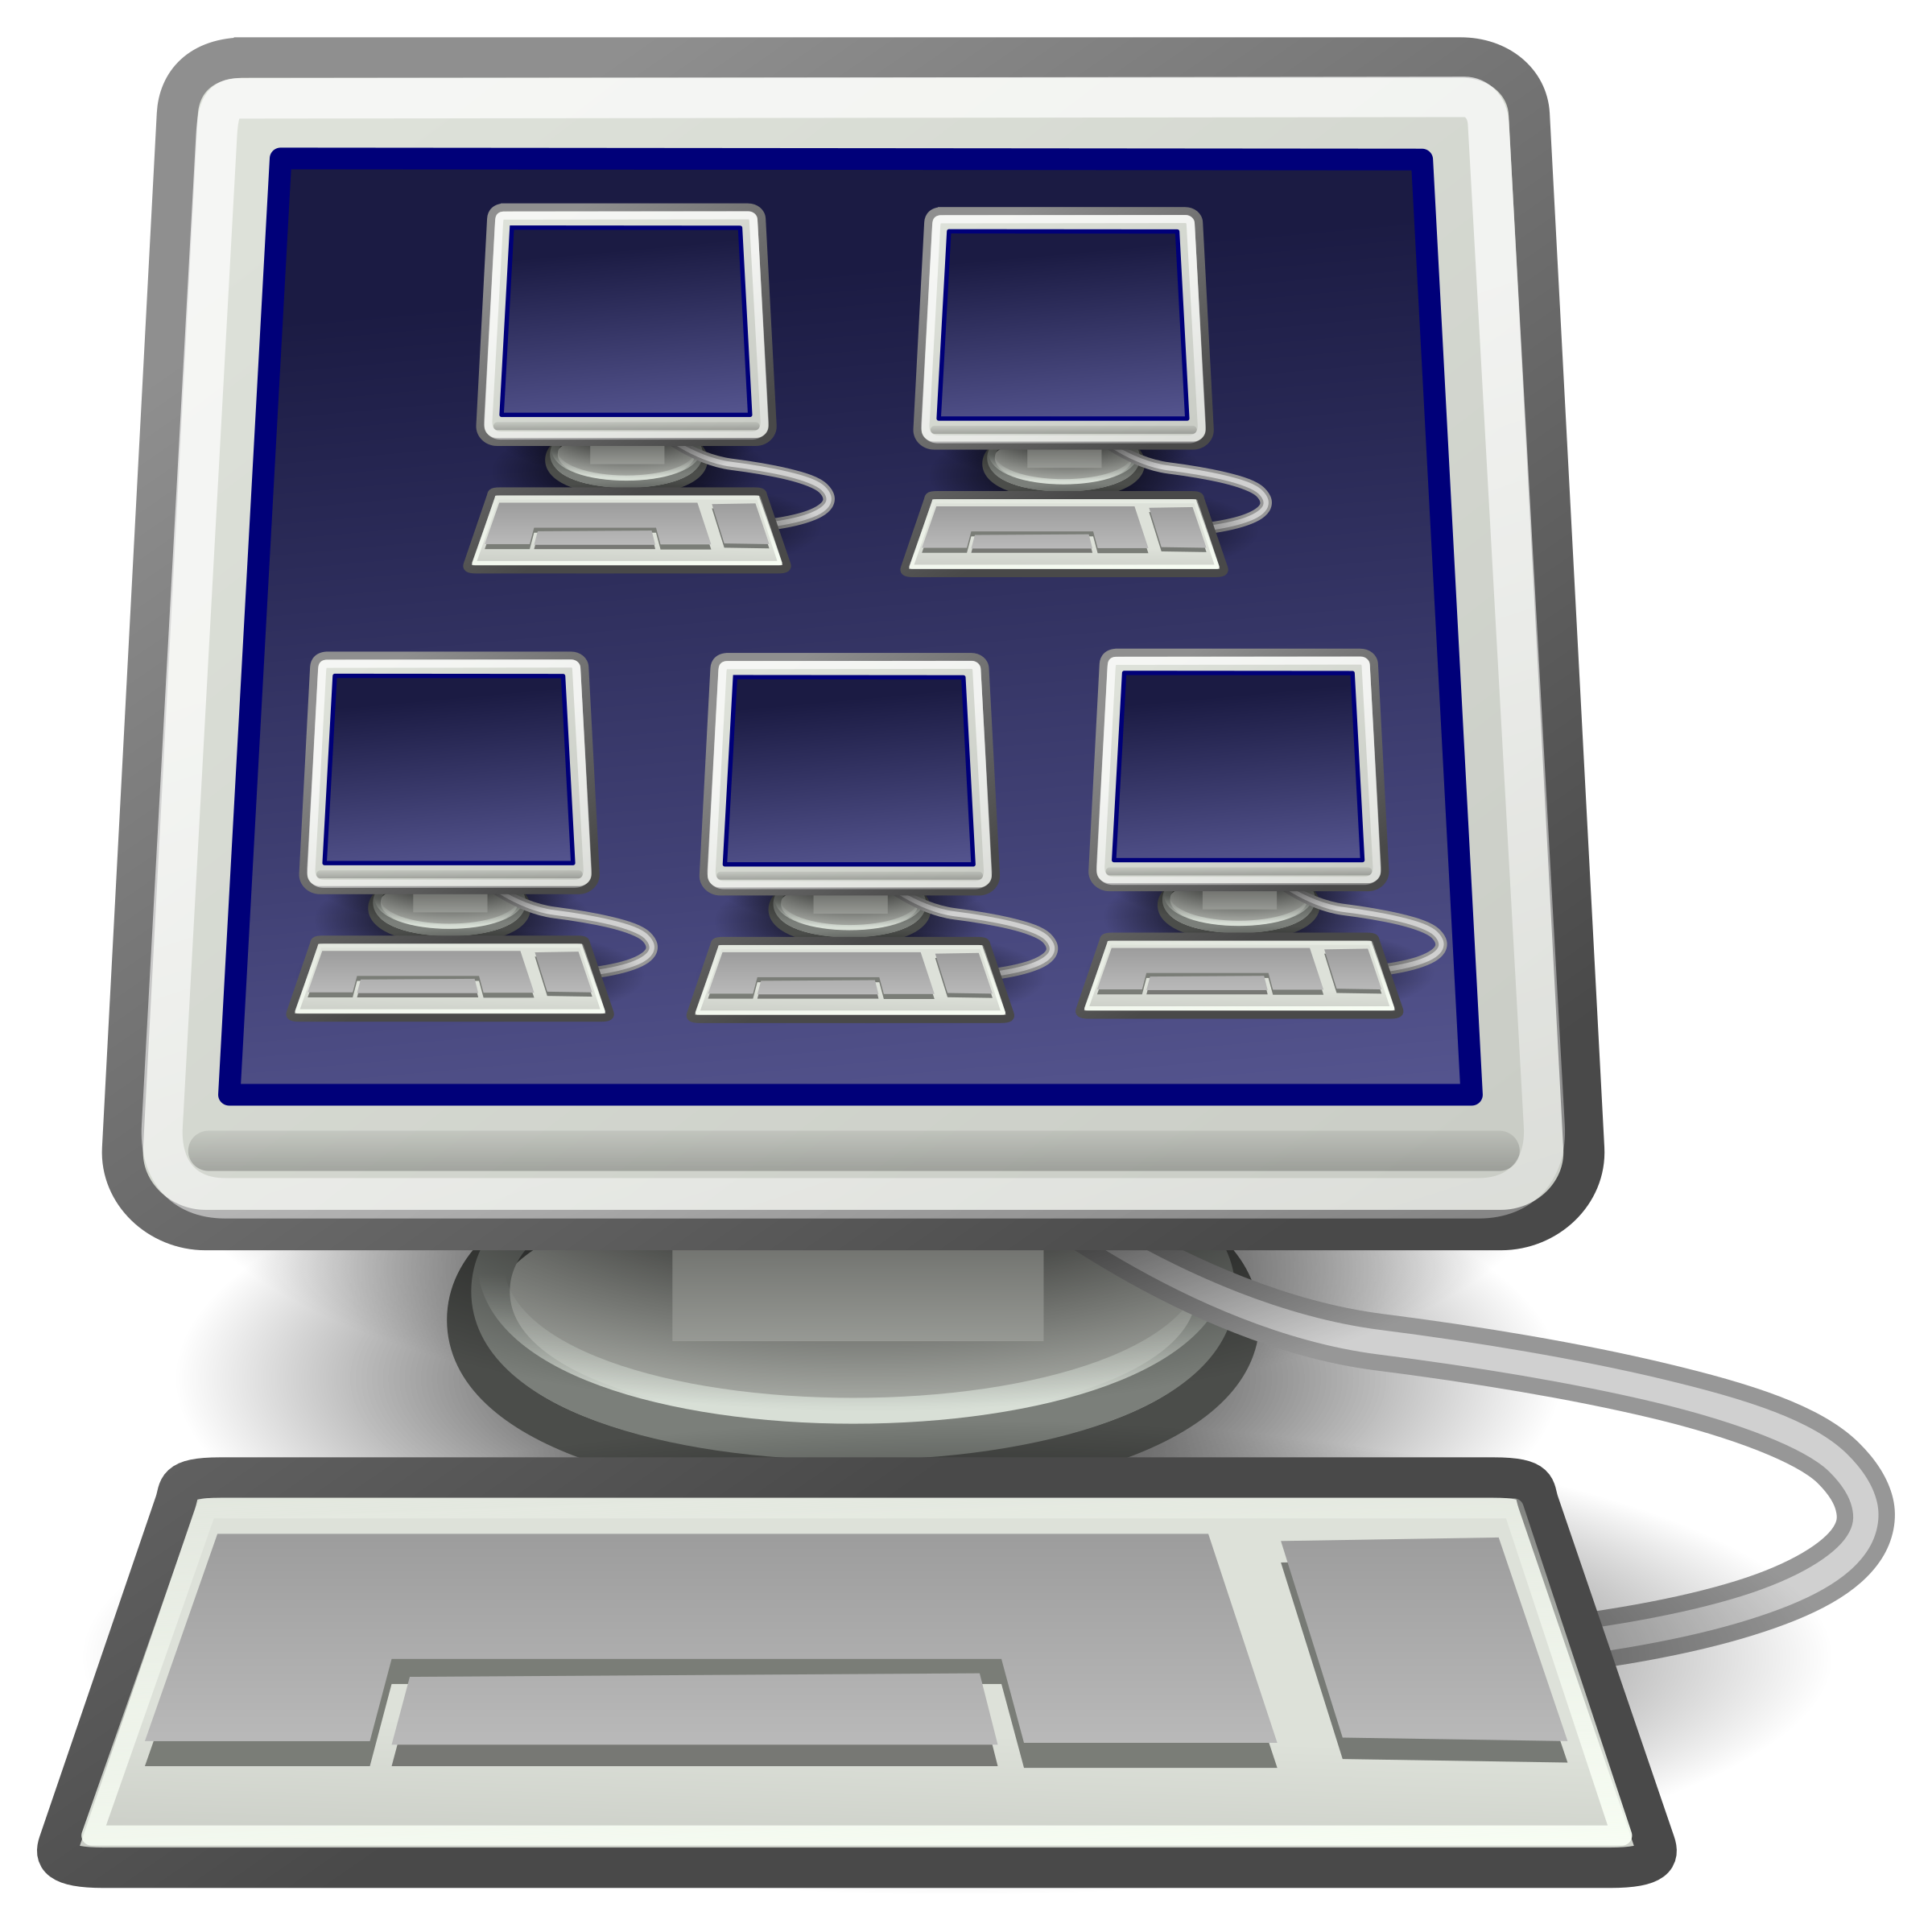 Electronics clipart icon. Virtualization for virtual machines